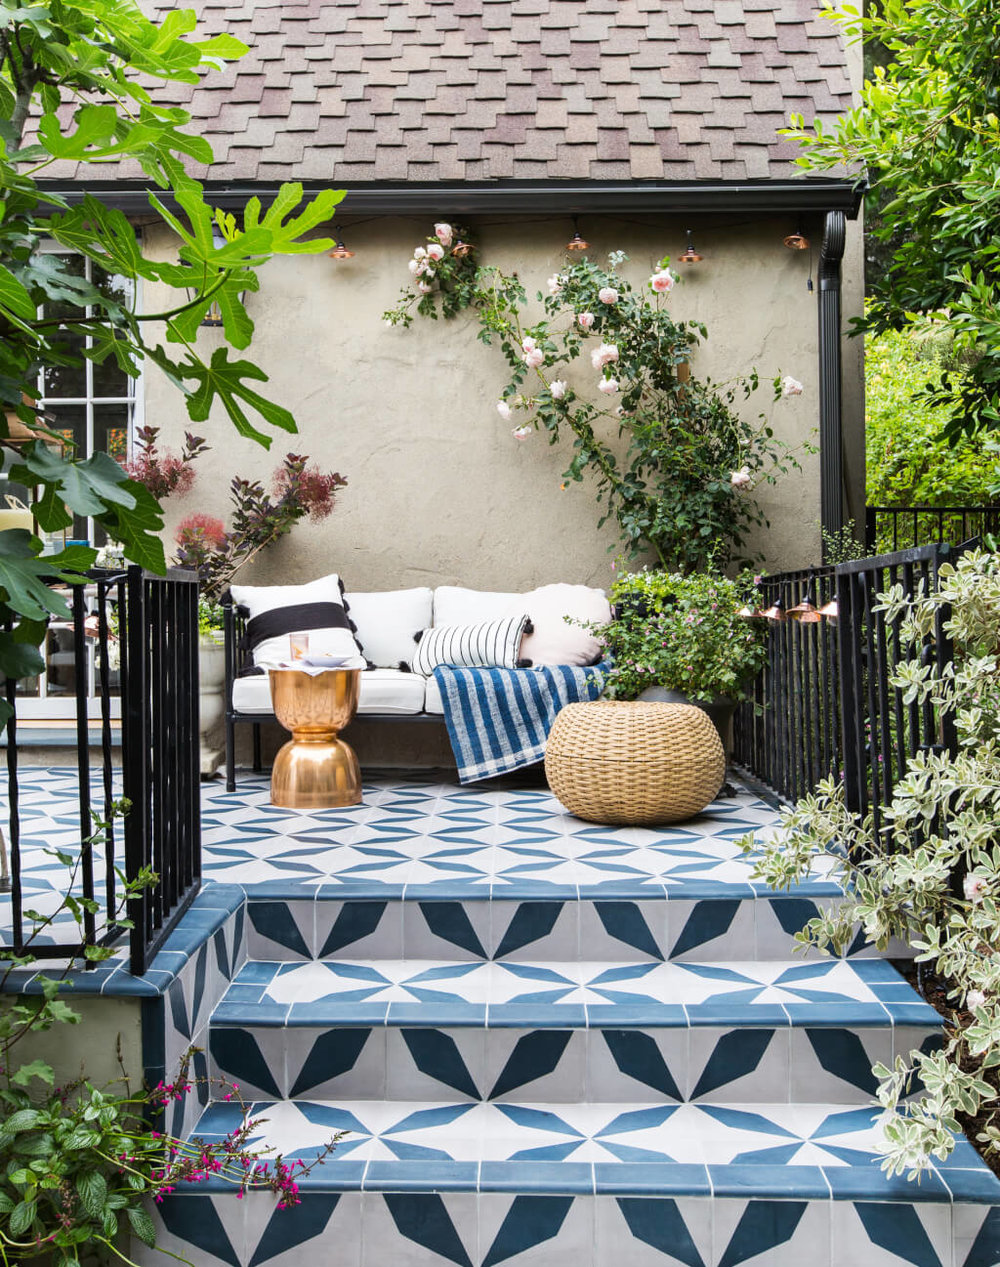 Emily-Henderson_House-Beautiful_Courtyard_Tile_Modern_English_Country_4-1024x1297.jpg